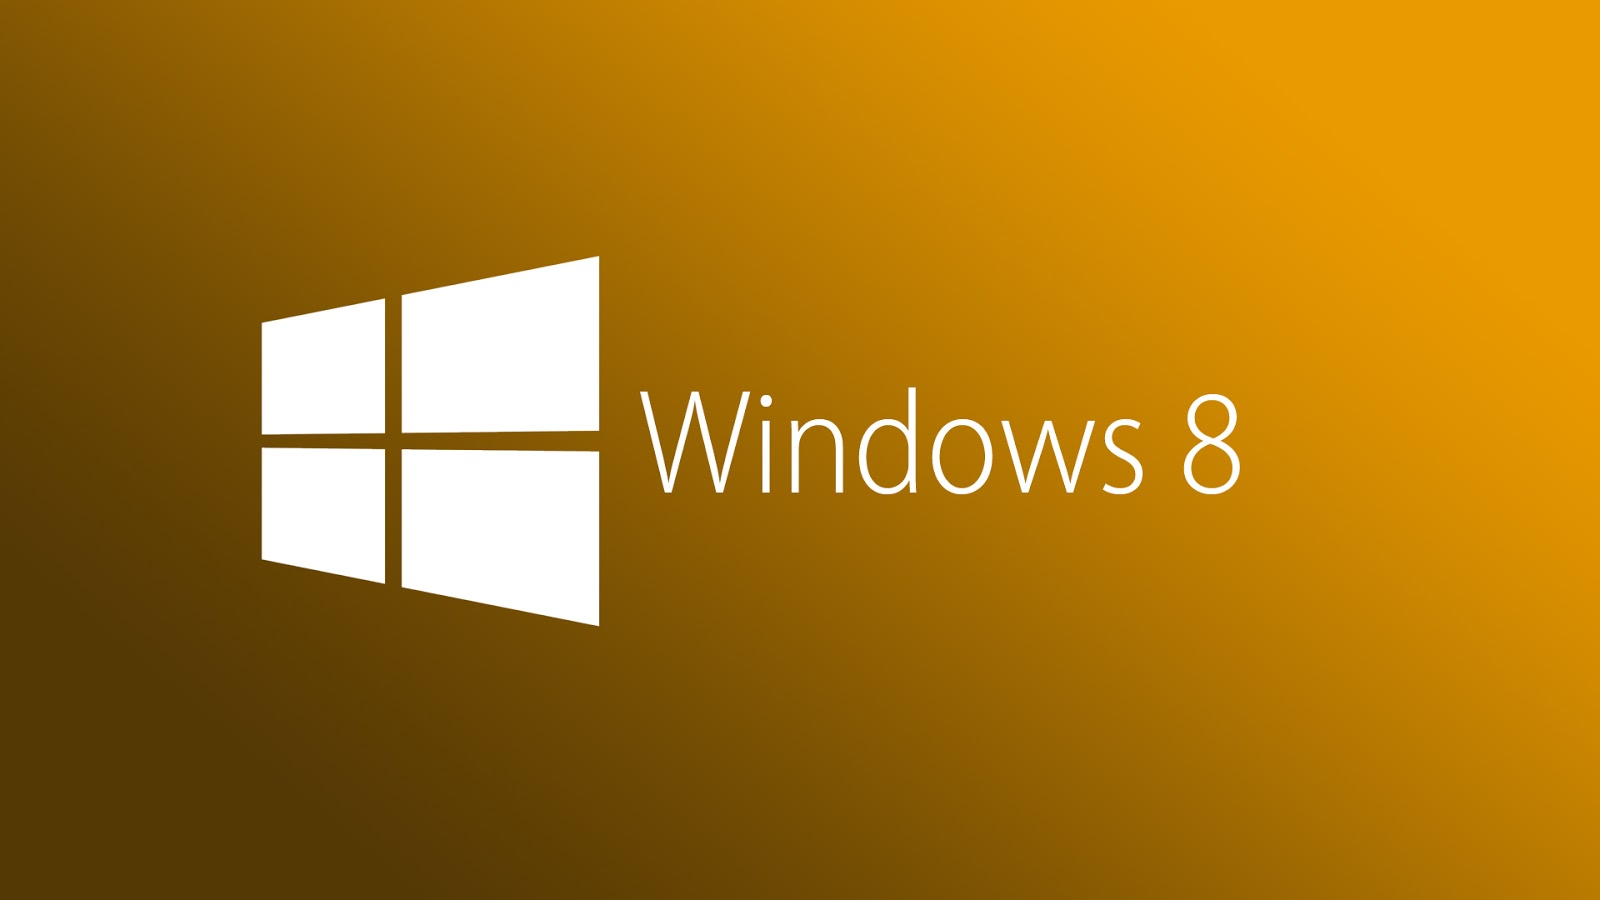 Windows 8 wallpapers for Windows 8 bureaublad